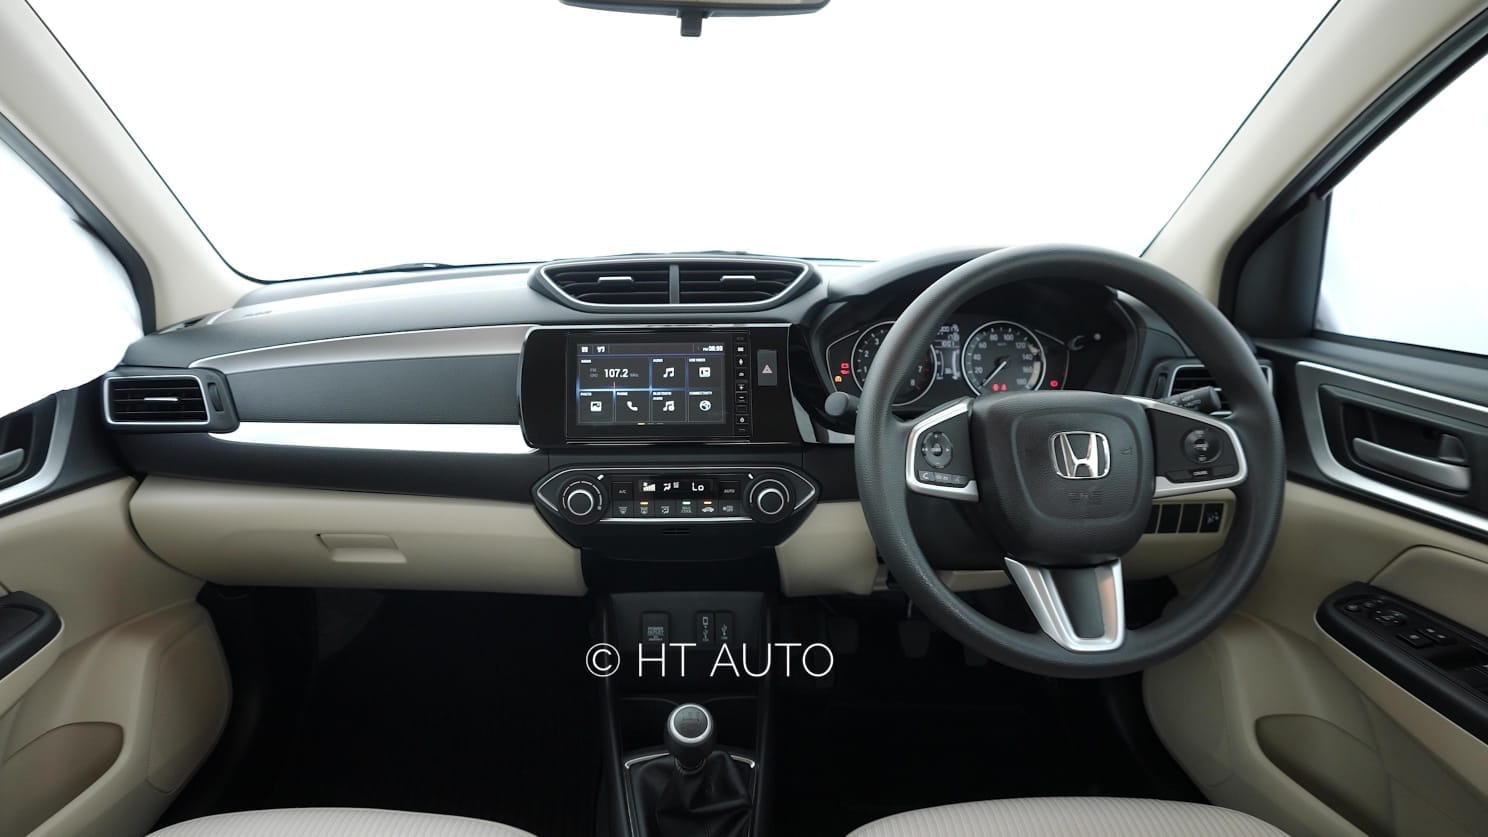 The overall layout and design of the Amaze's cabin remain exactly the same as found on the previous model. New interior additions include a new Satin Silver finish, map lamp and rear view camera display. (HT Auto/Sabyasachi Dasgupta)